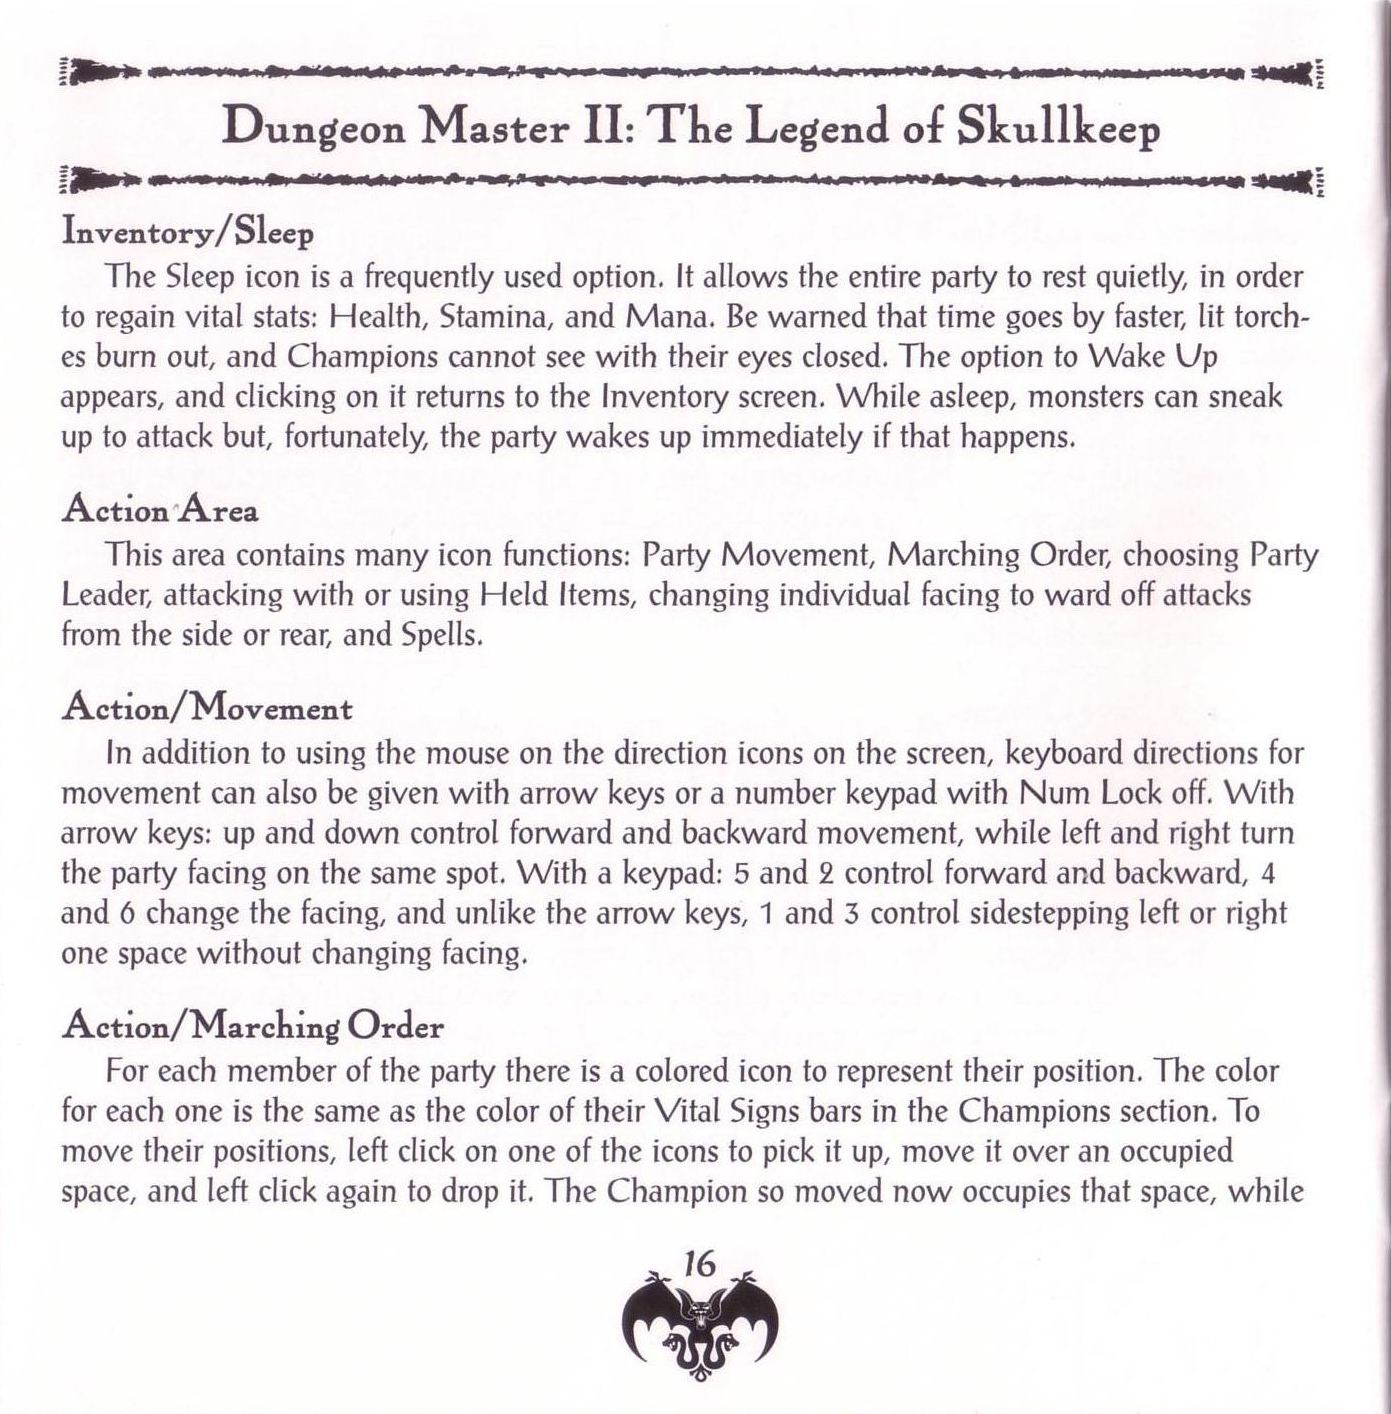 Game - Dungeon Master II - US - PC - Jewel Case - Booklet - Page 018 - Scan